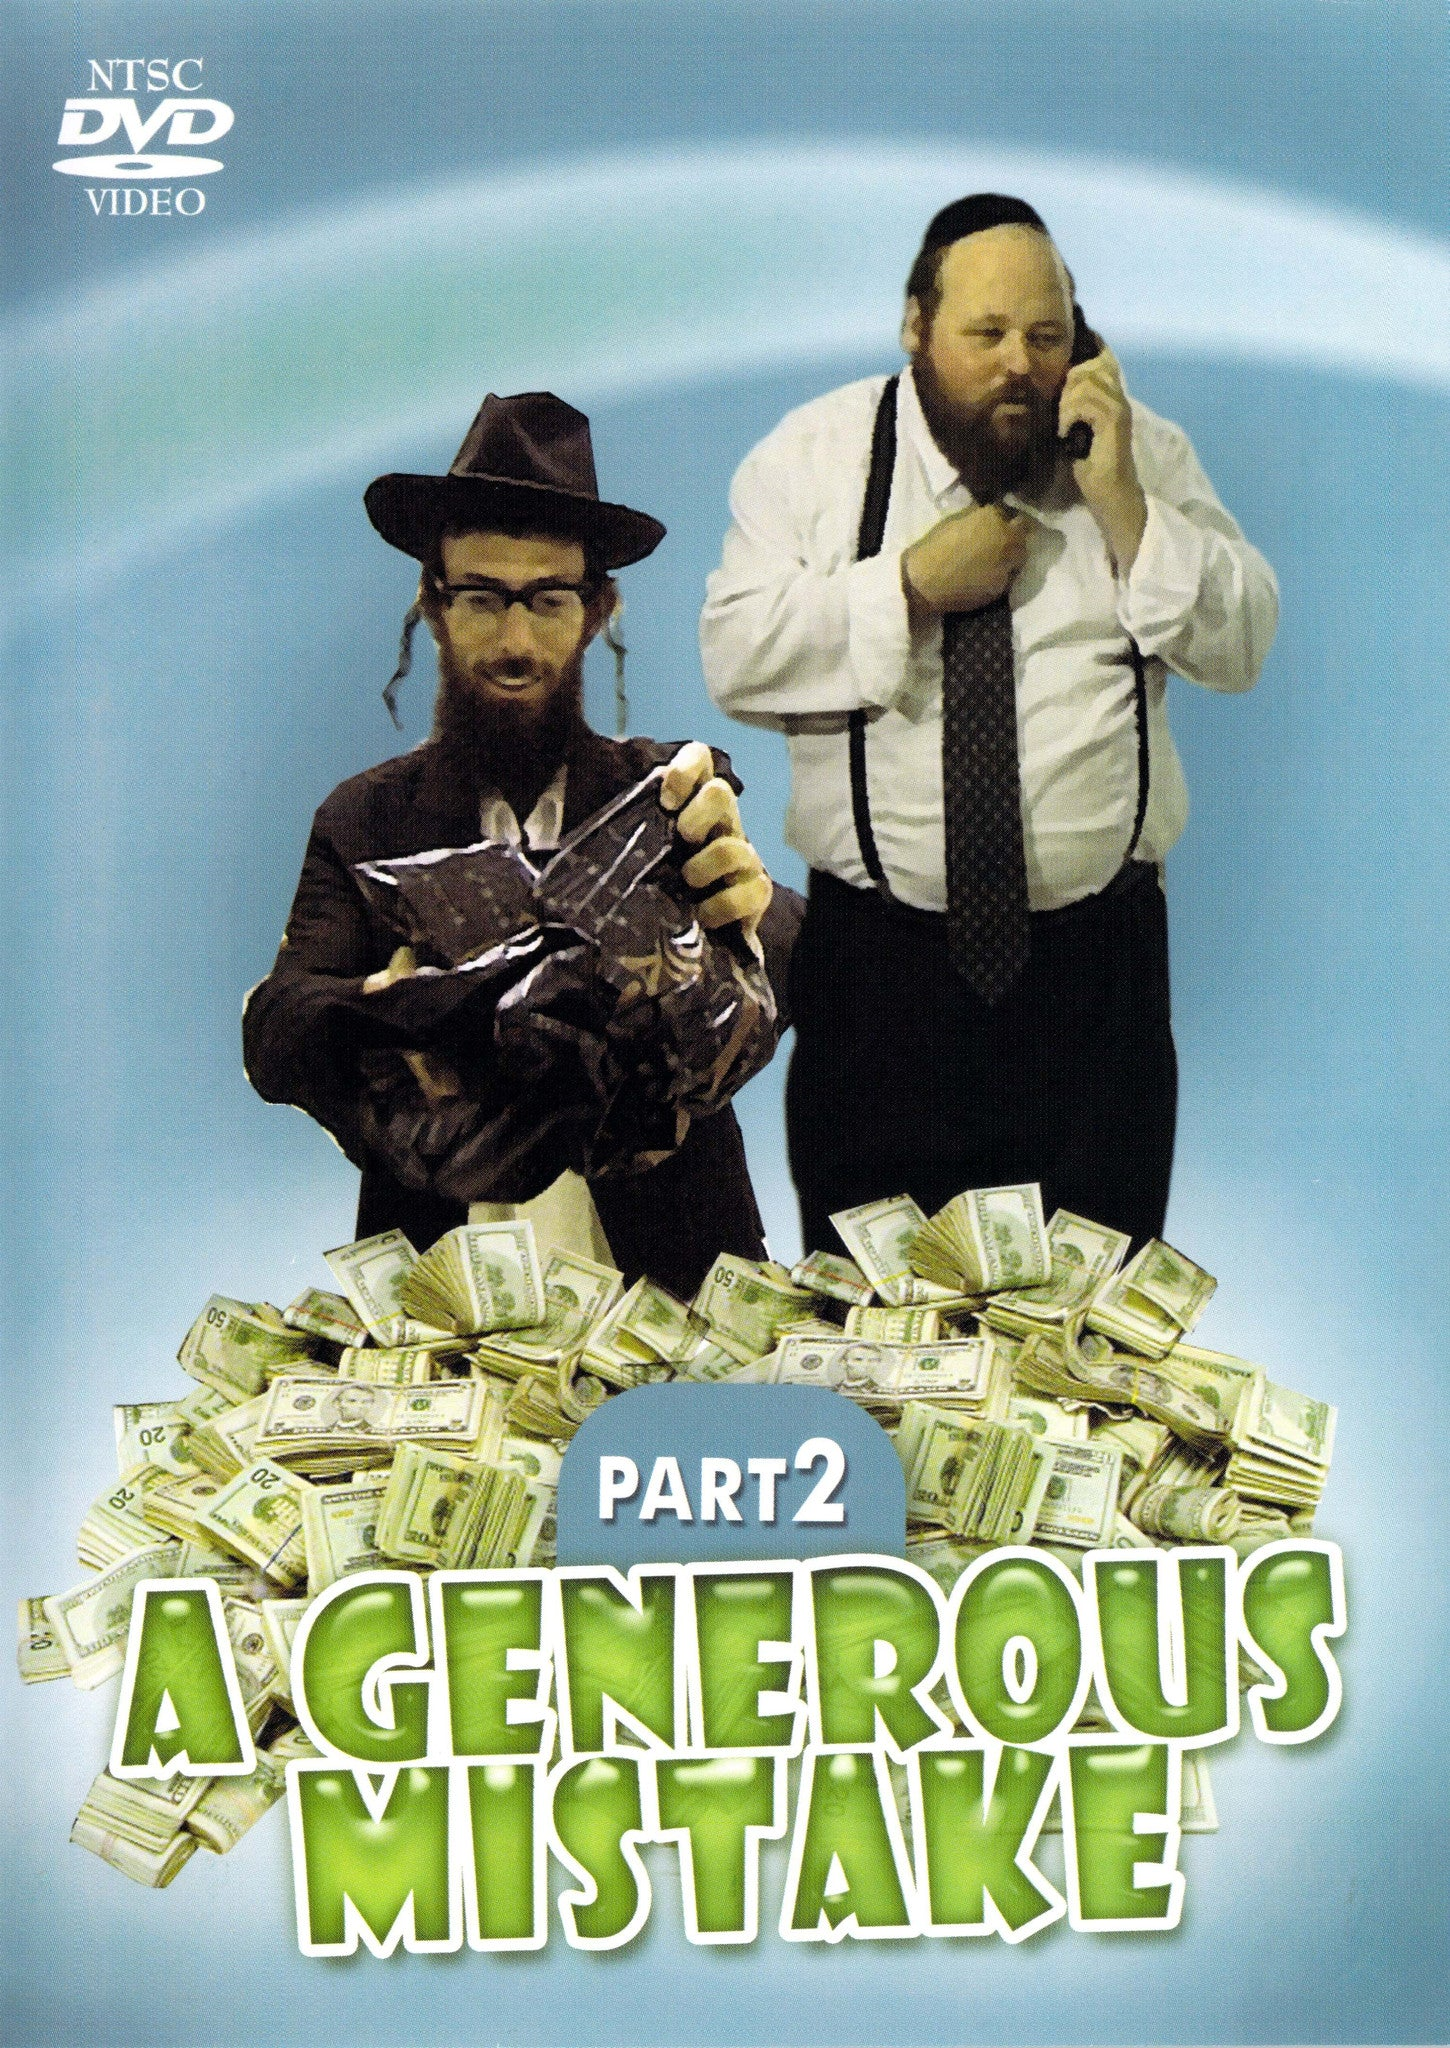 Greentec Movies - A Generous Mistake Volume 2